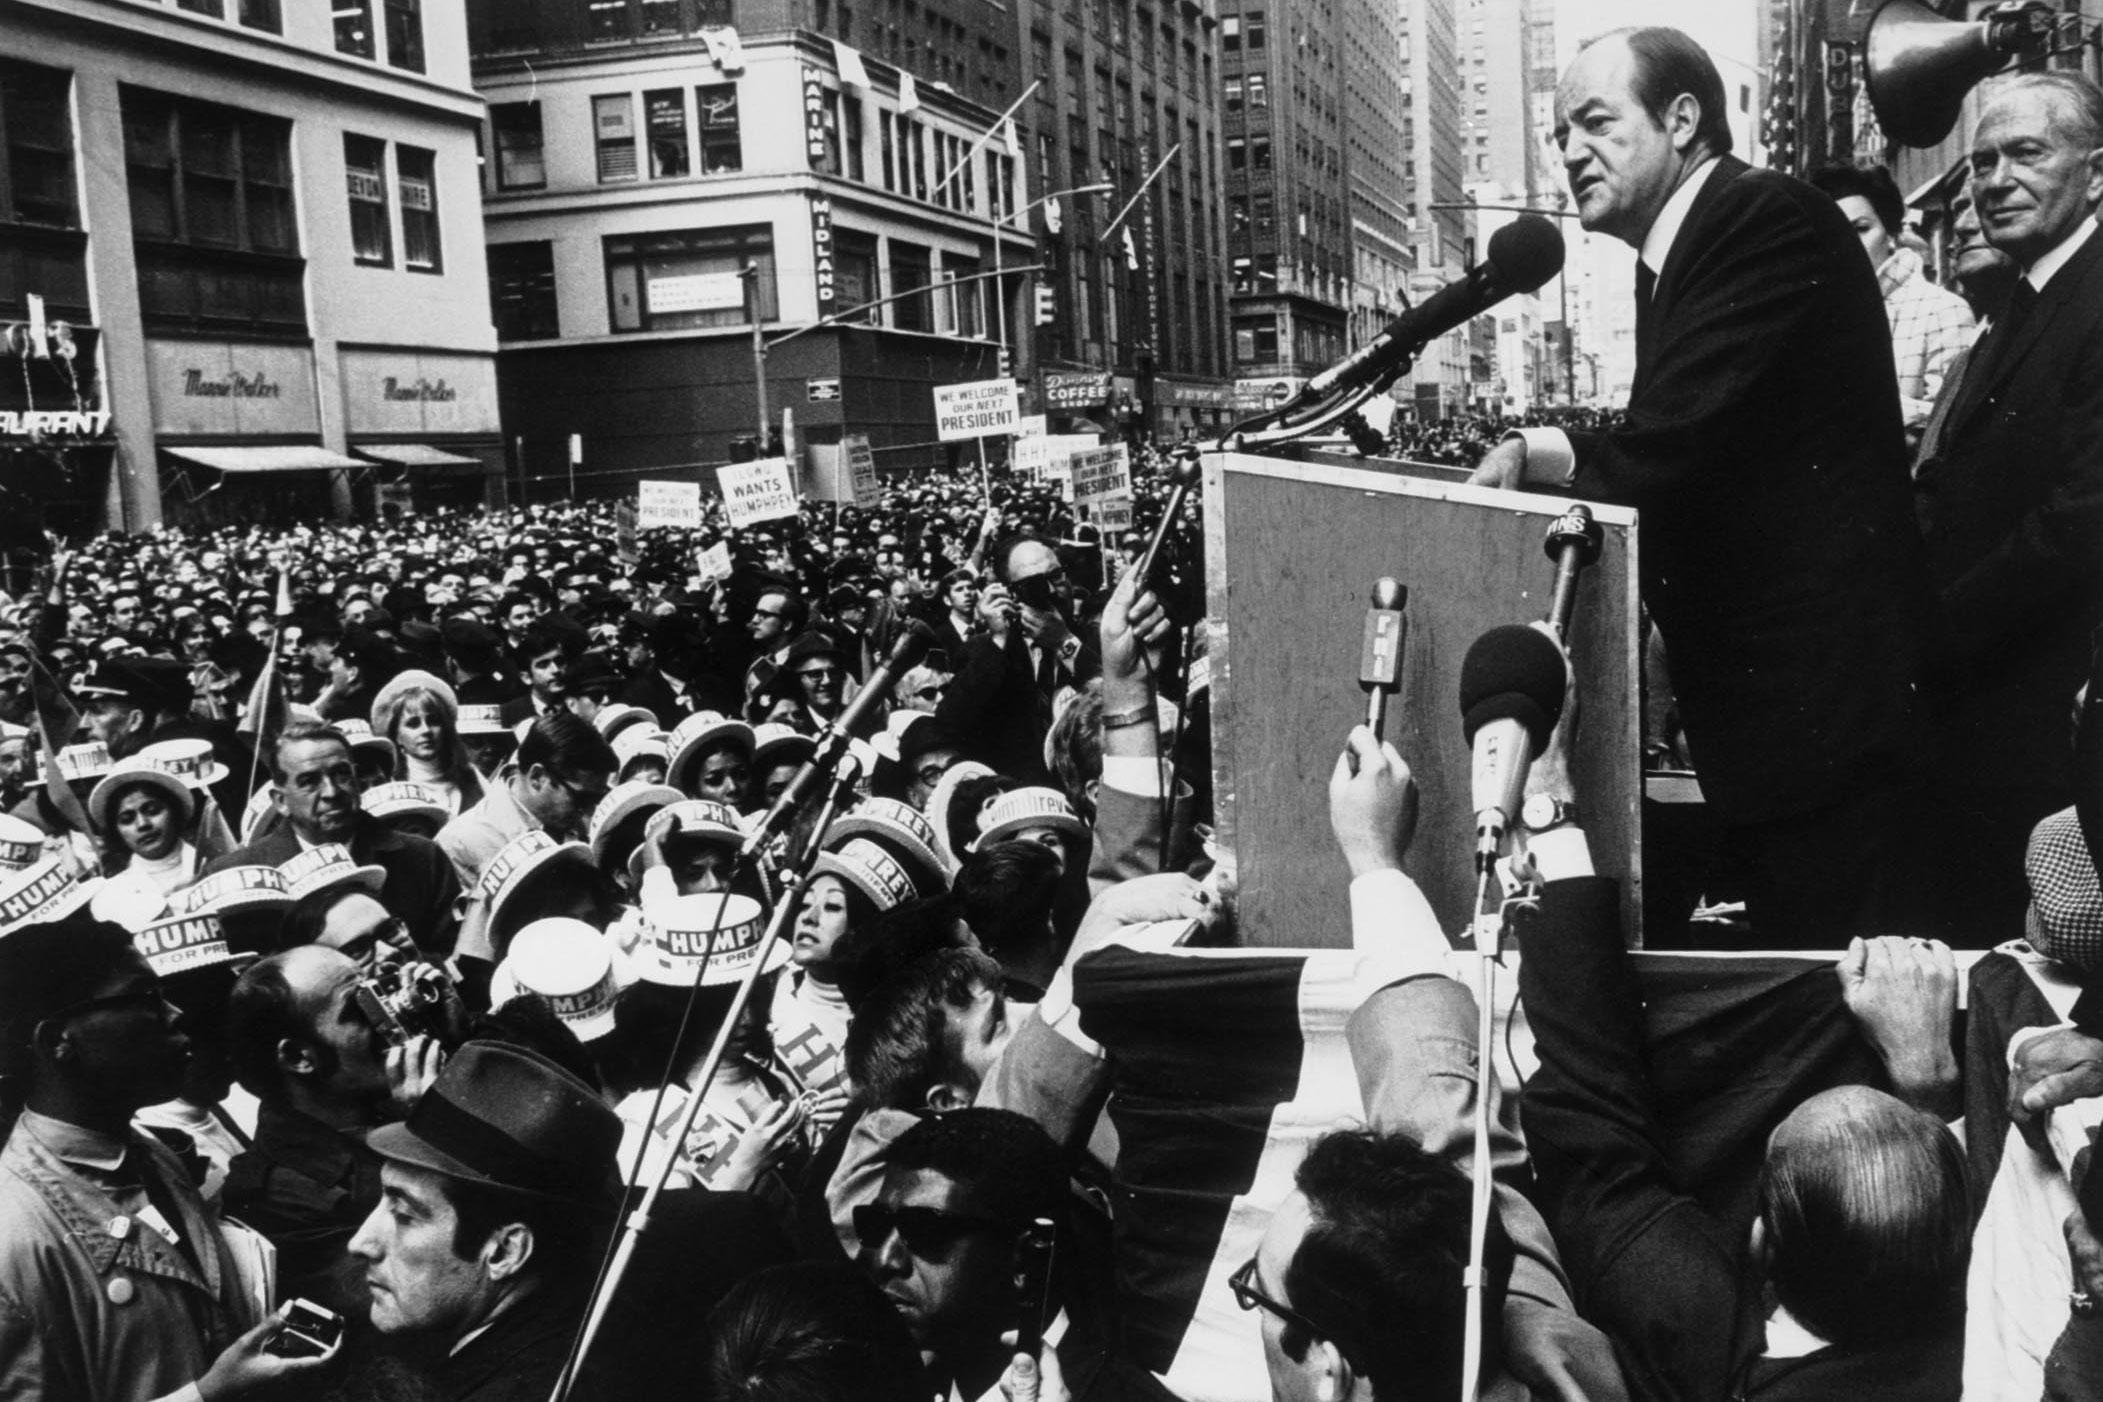 Democrat Hubert H. Humphrey campaigns in New York City during the 1968 presidential campaign.